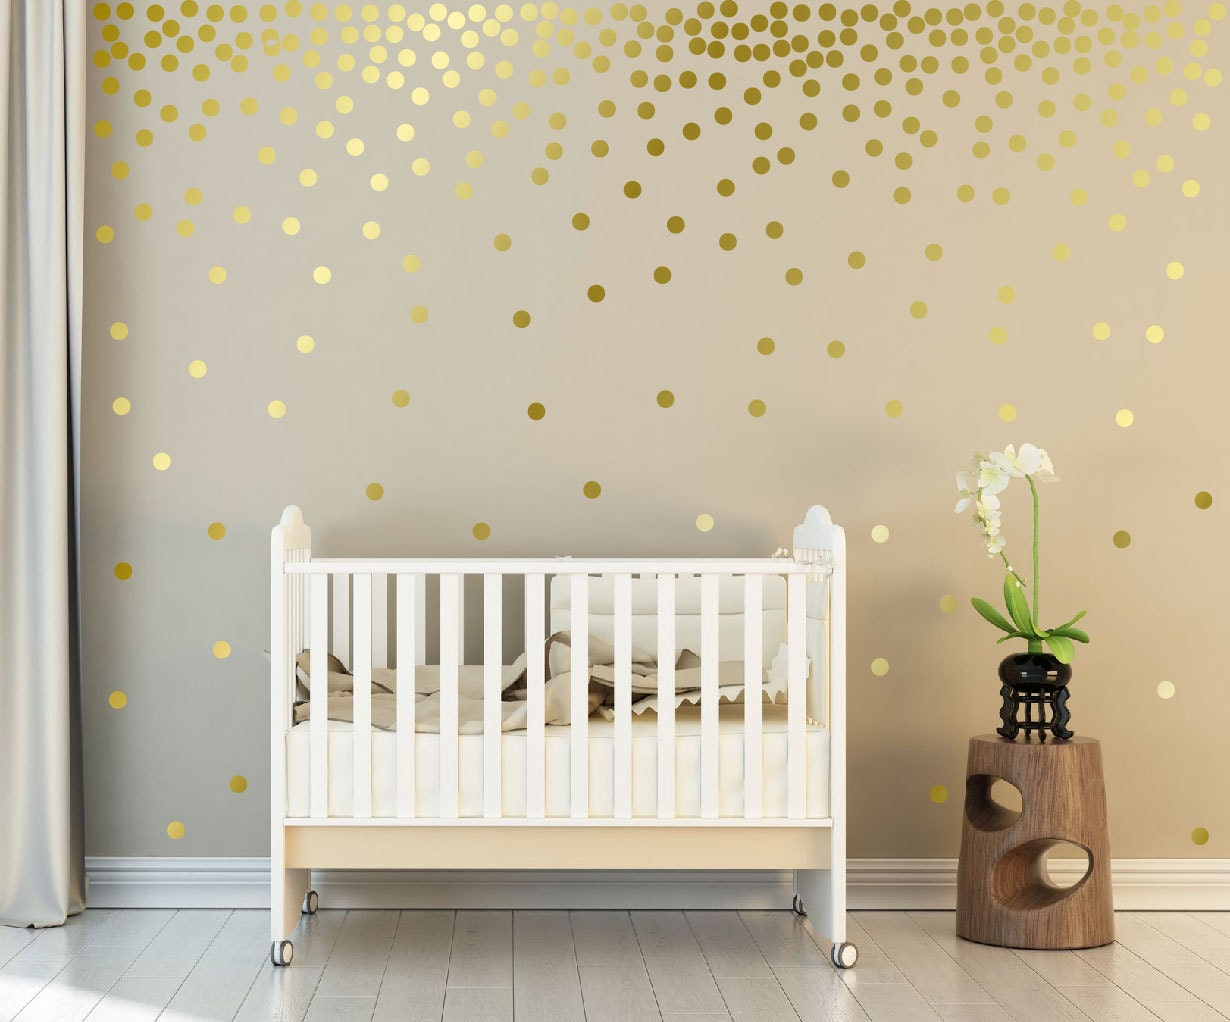 Beautiful Metallic Gold Wall Decals Polka Dots Wall Decor   1 Inch, 1.5,2,2.5,3, 3.5,  4 Inches Circle Vinyl Decals Dot Wall Stickers